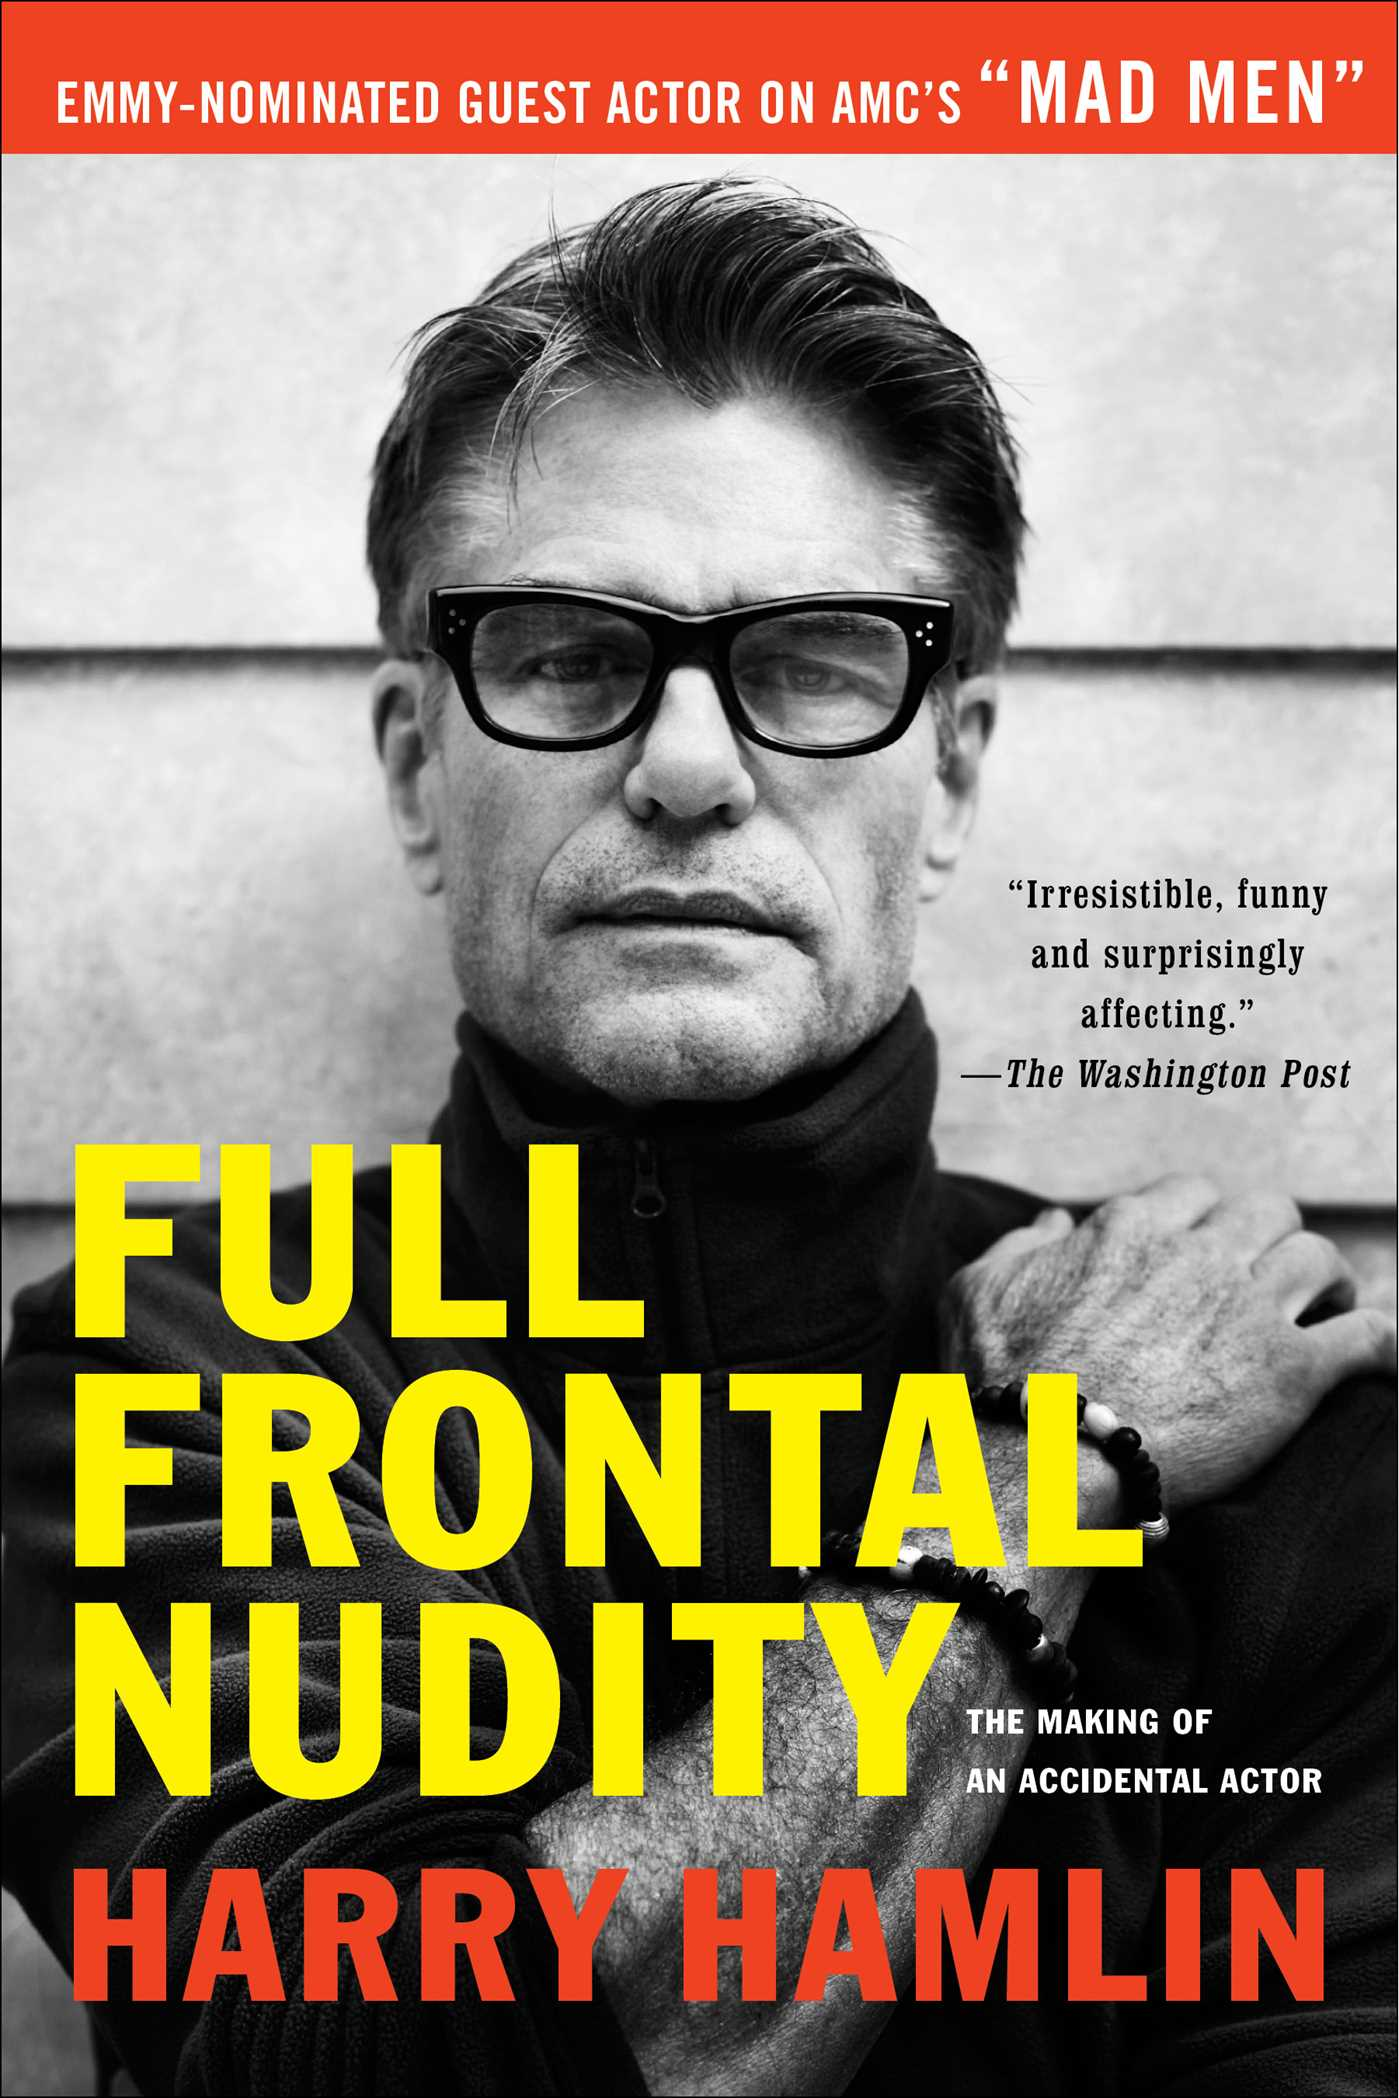 Full frontal nudity 9781439170014 hr